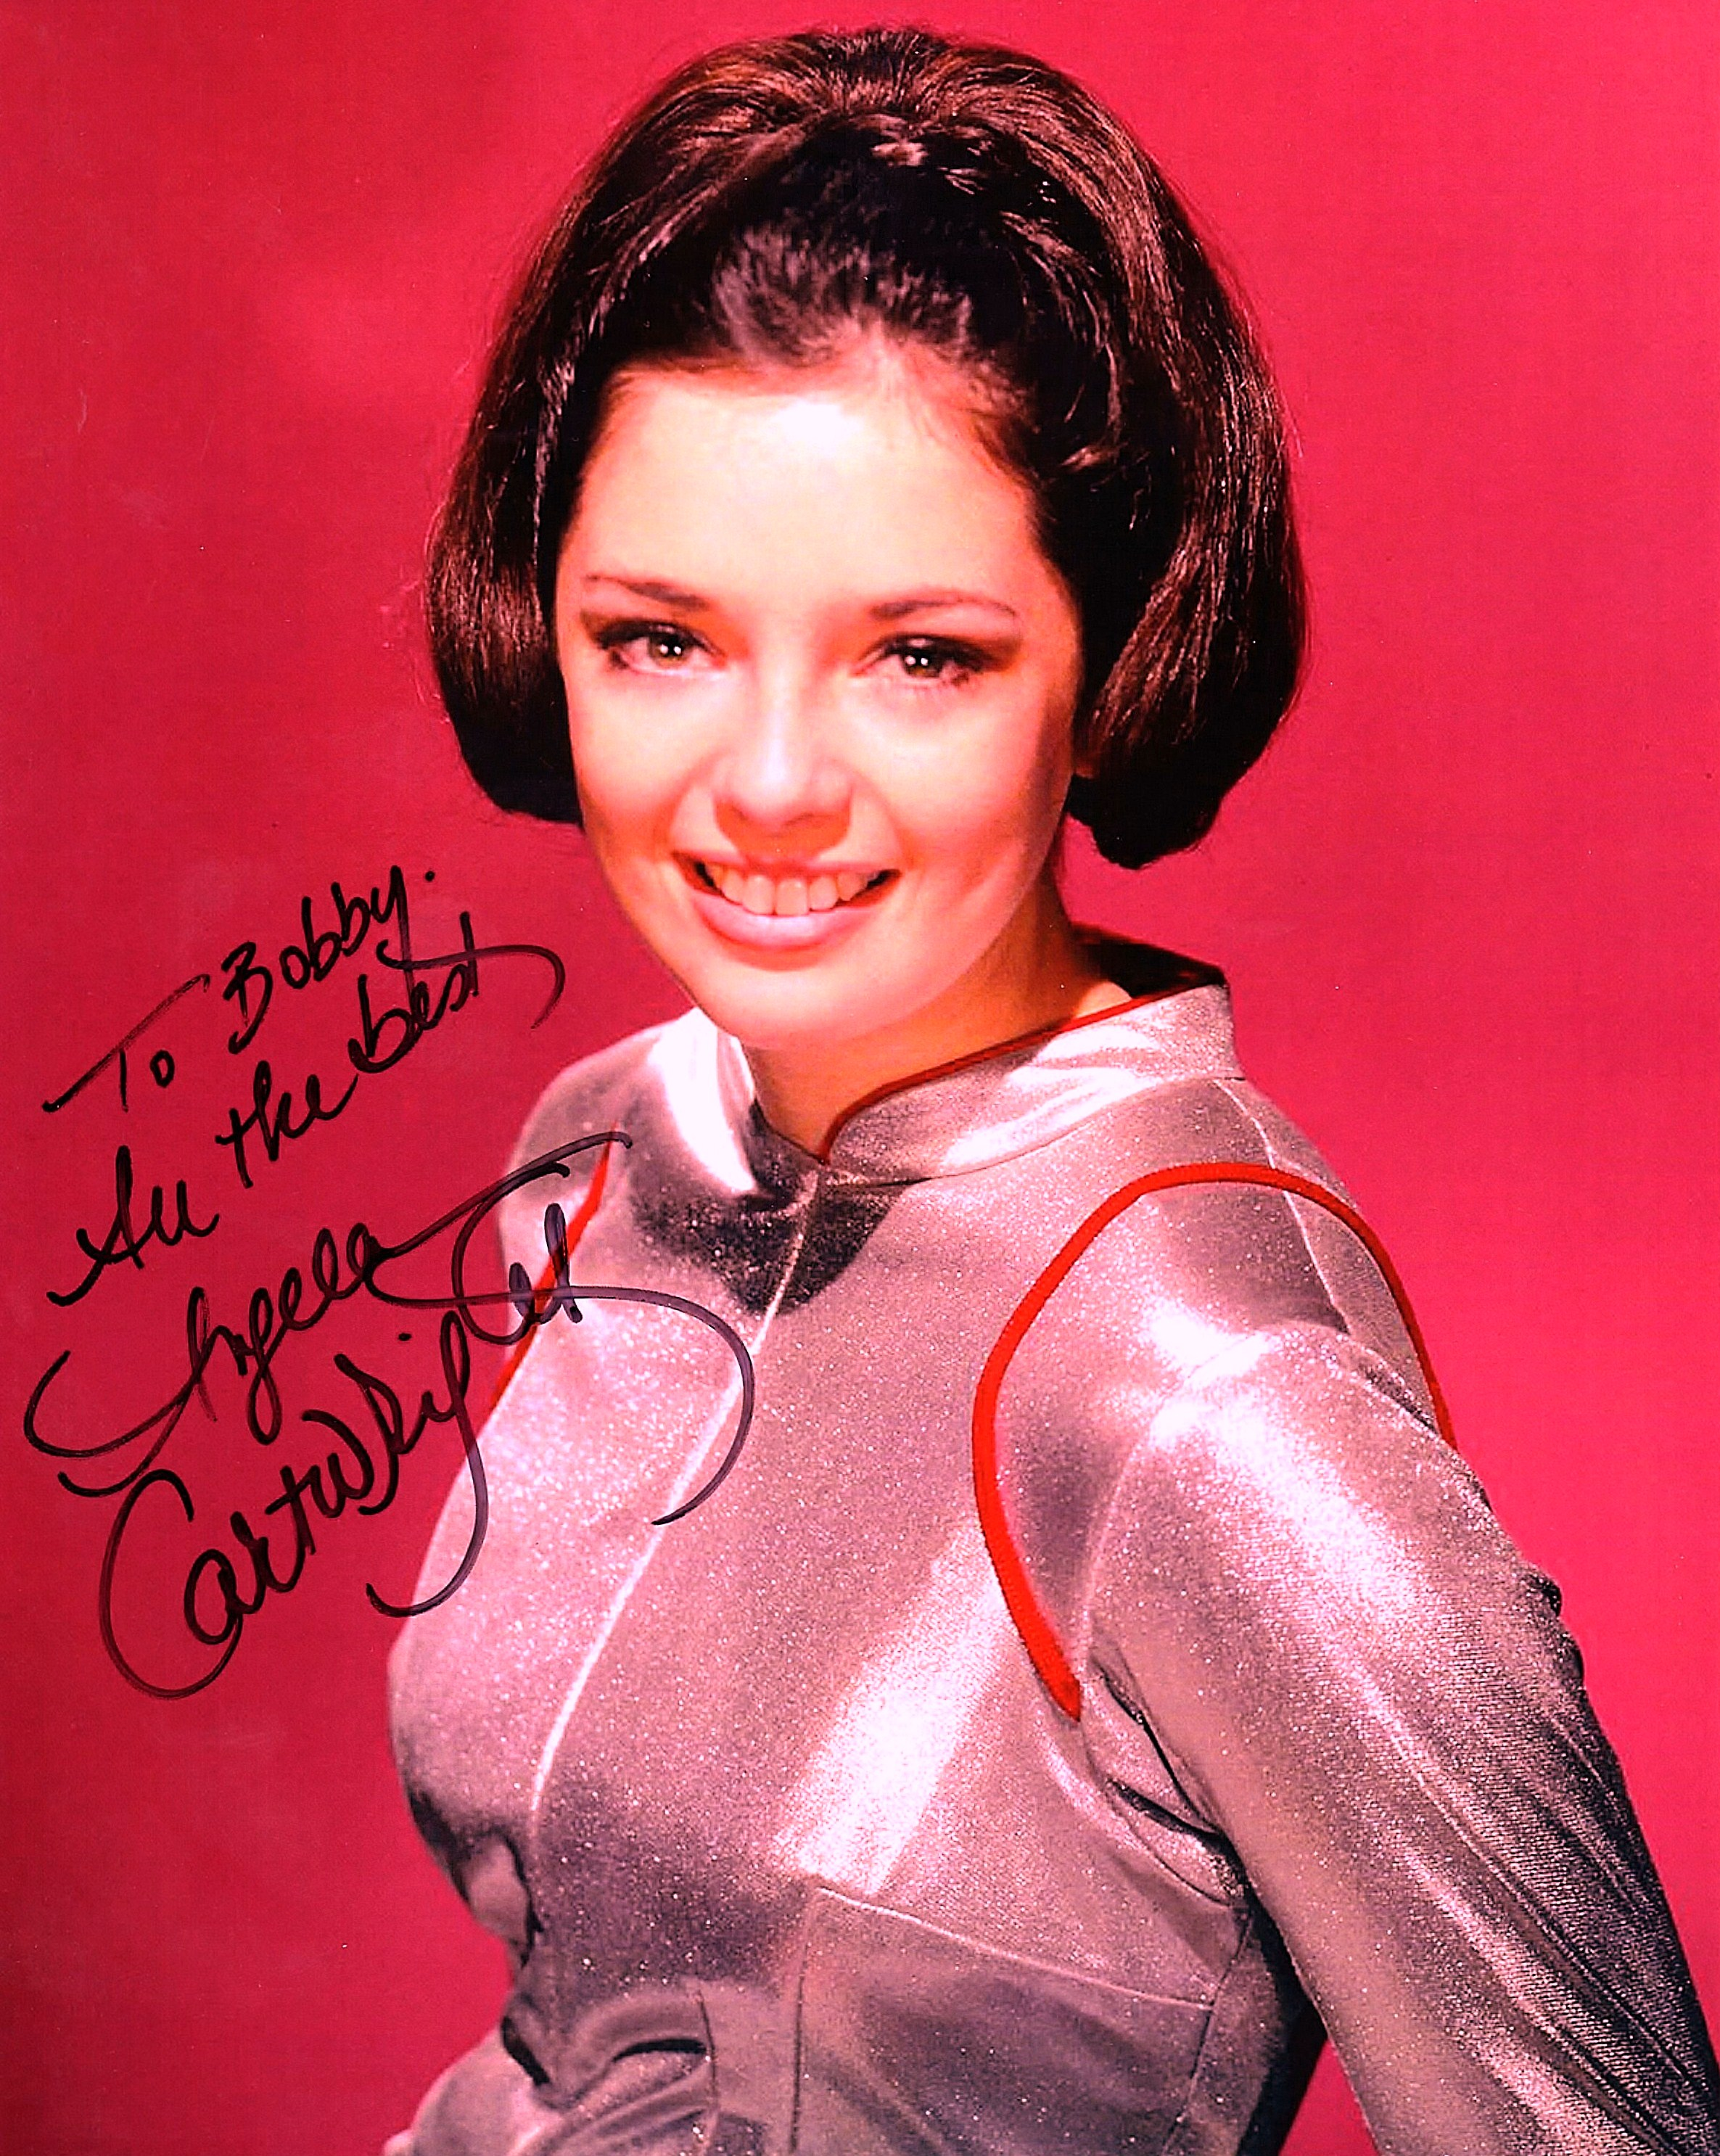 penny robinson lost in space penny robinson lost in space penny robinson lost